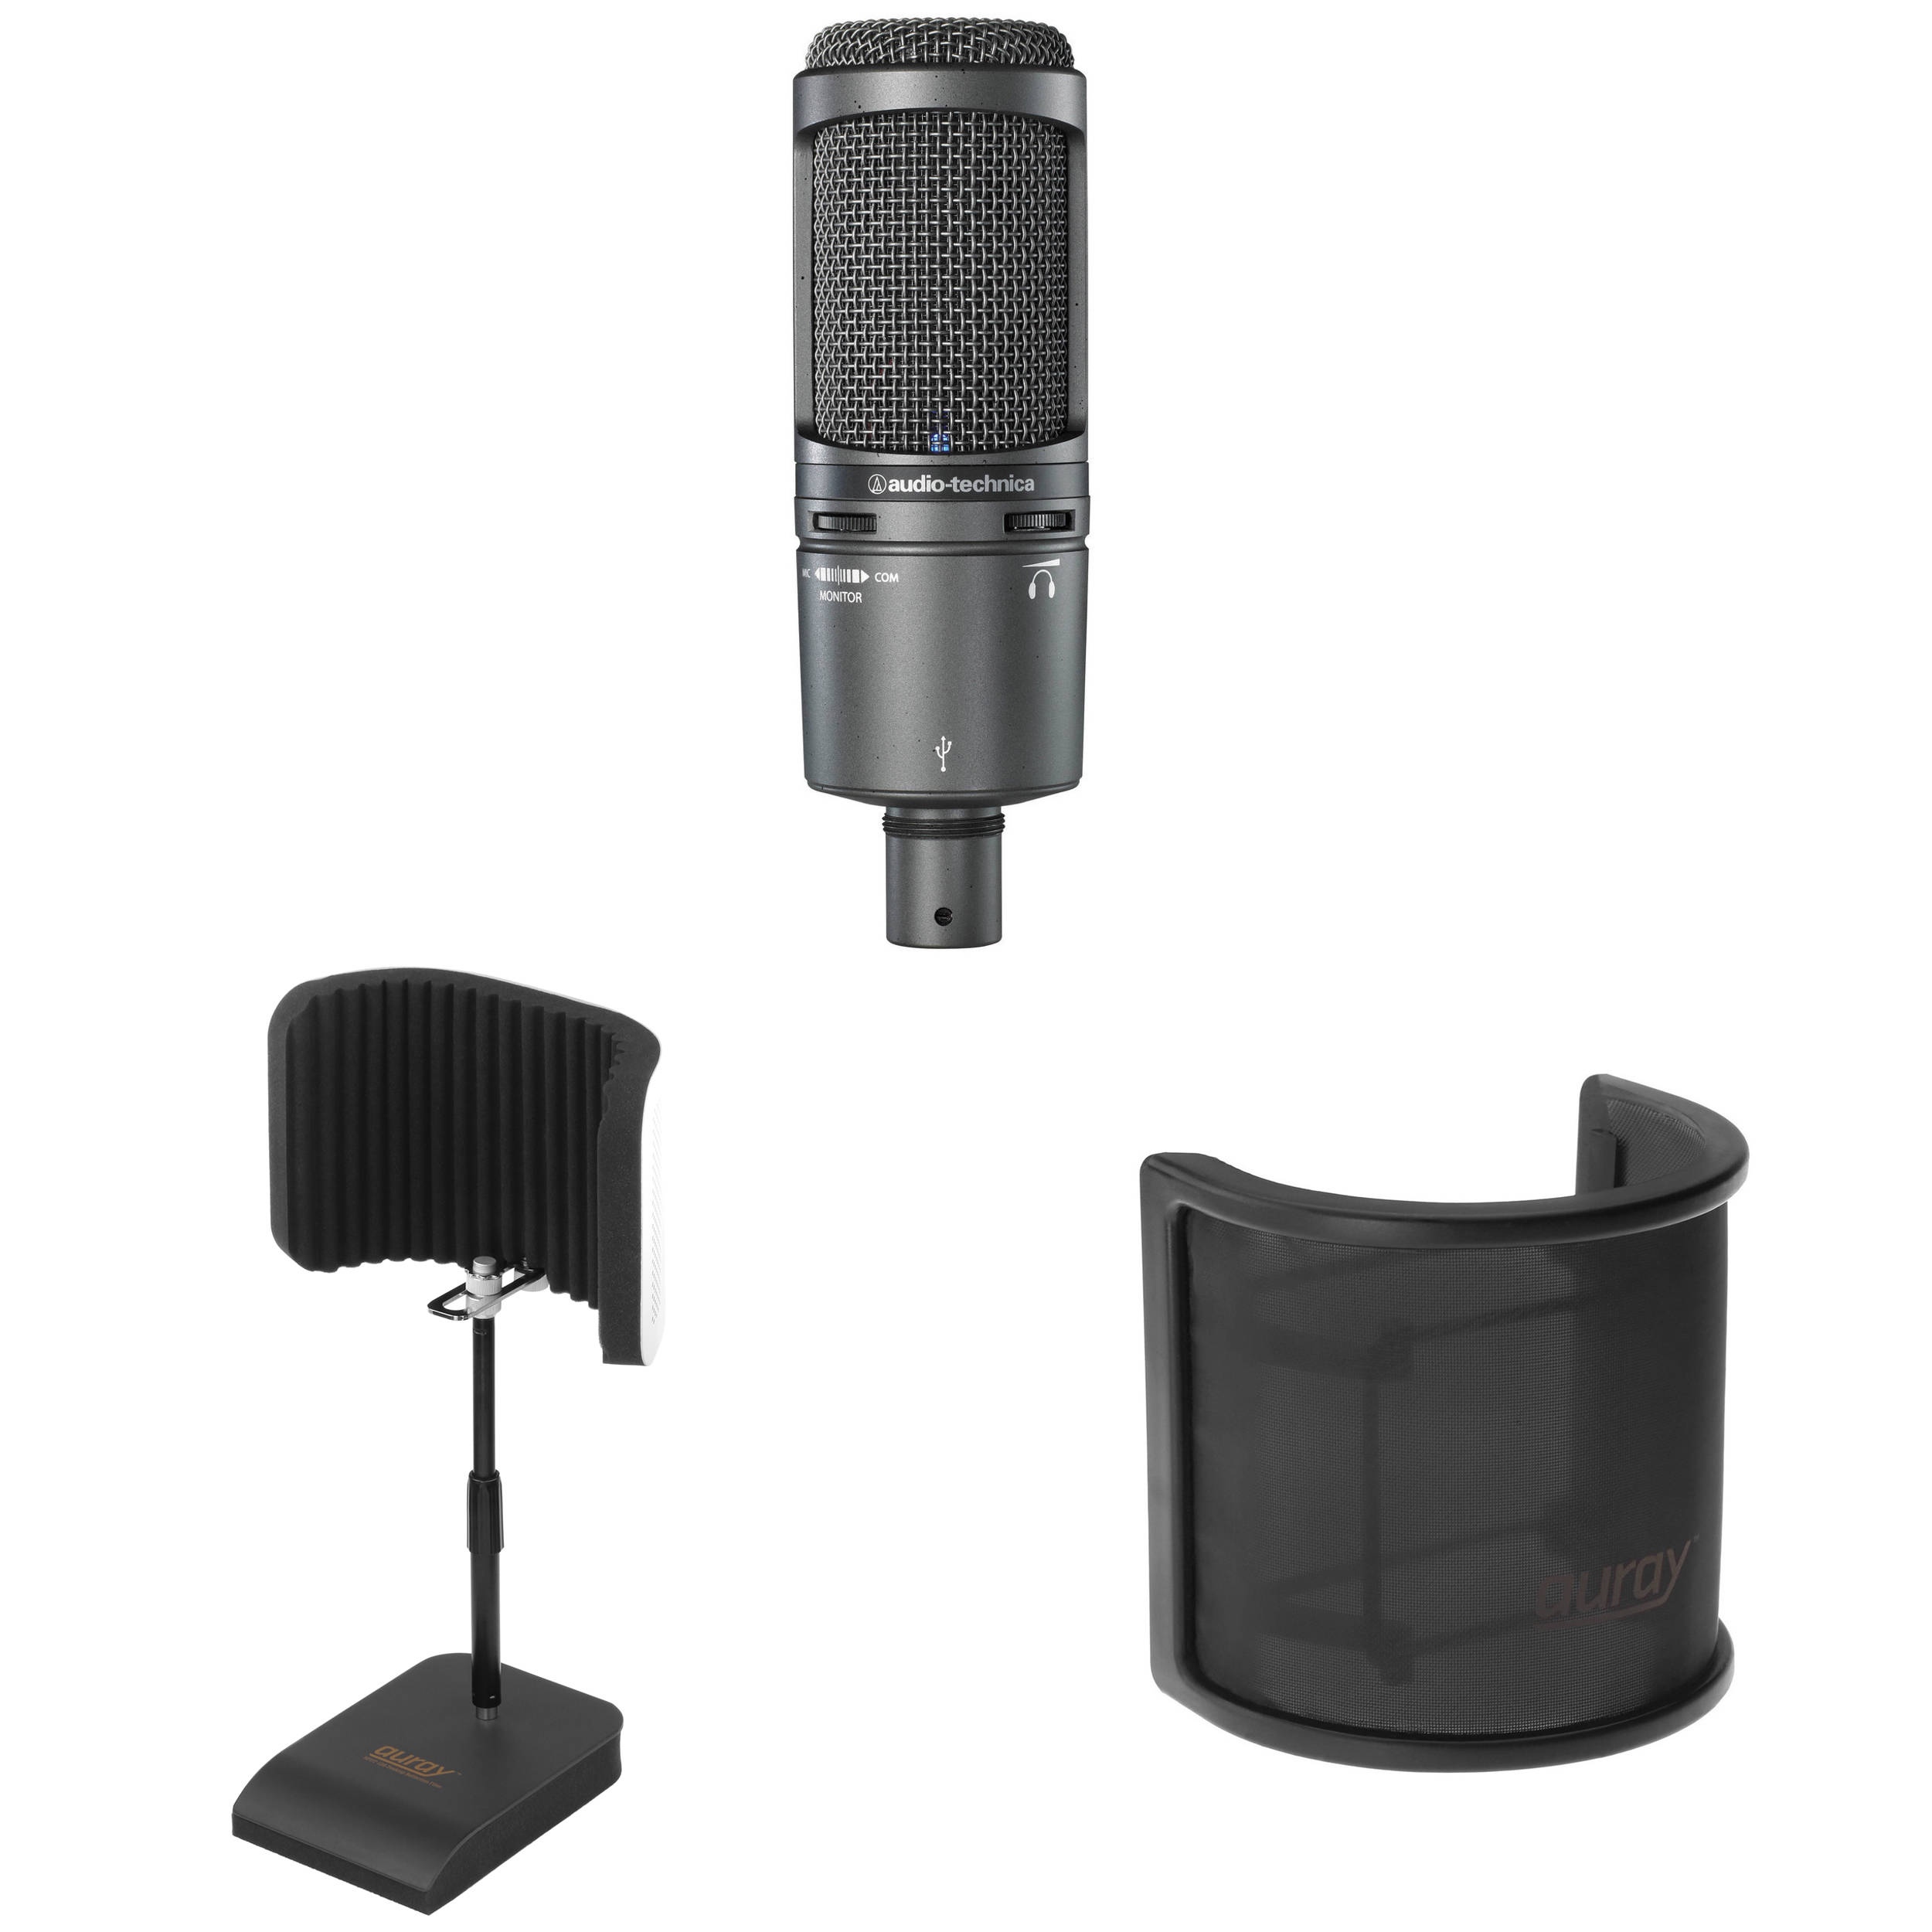 how to connect audio technica at2020 to computer